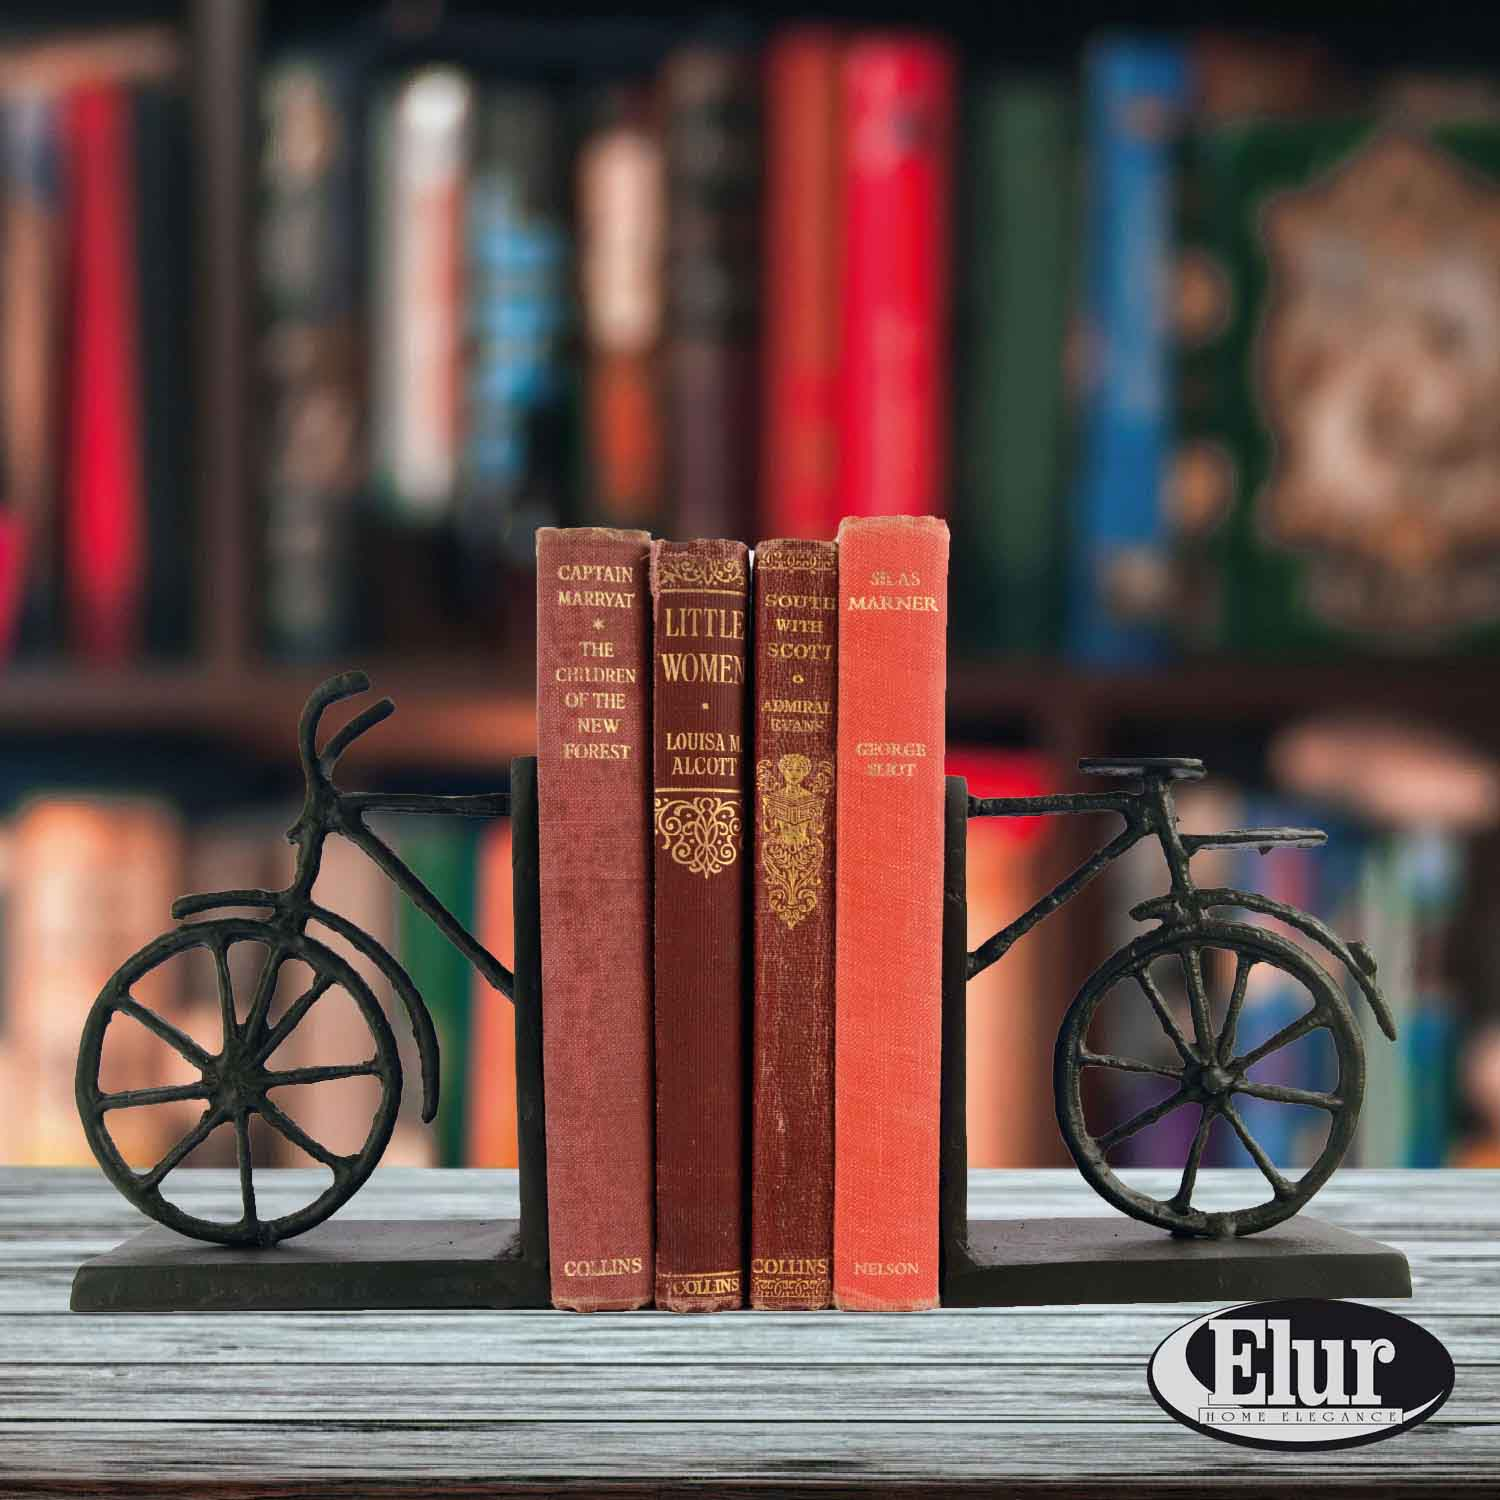 'Europa 13cm Summer Bicycle Book Ends Cast Iron Figurine